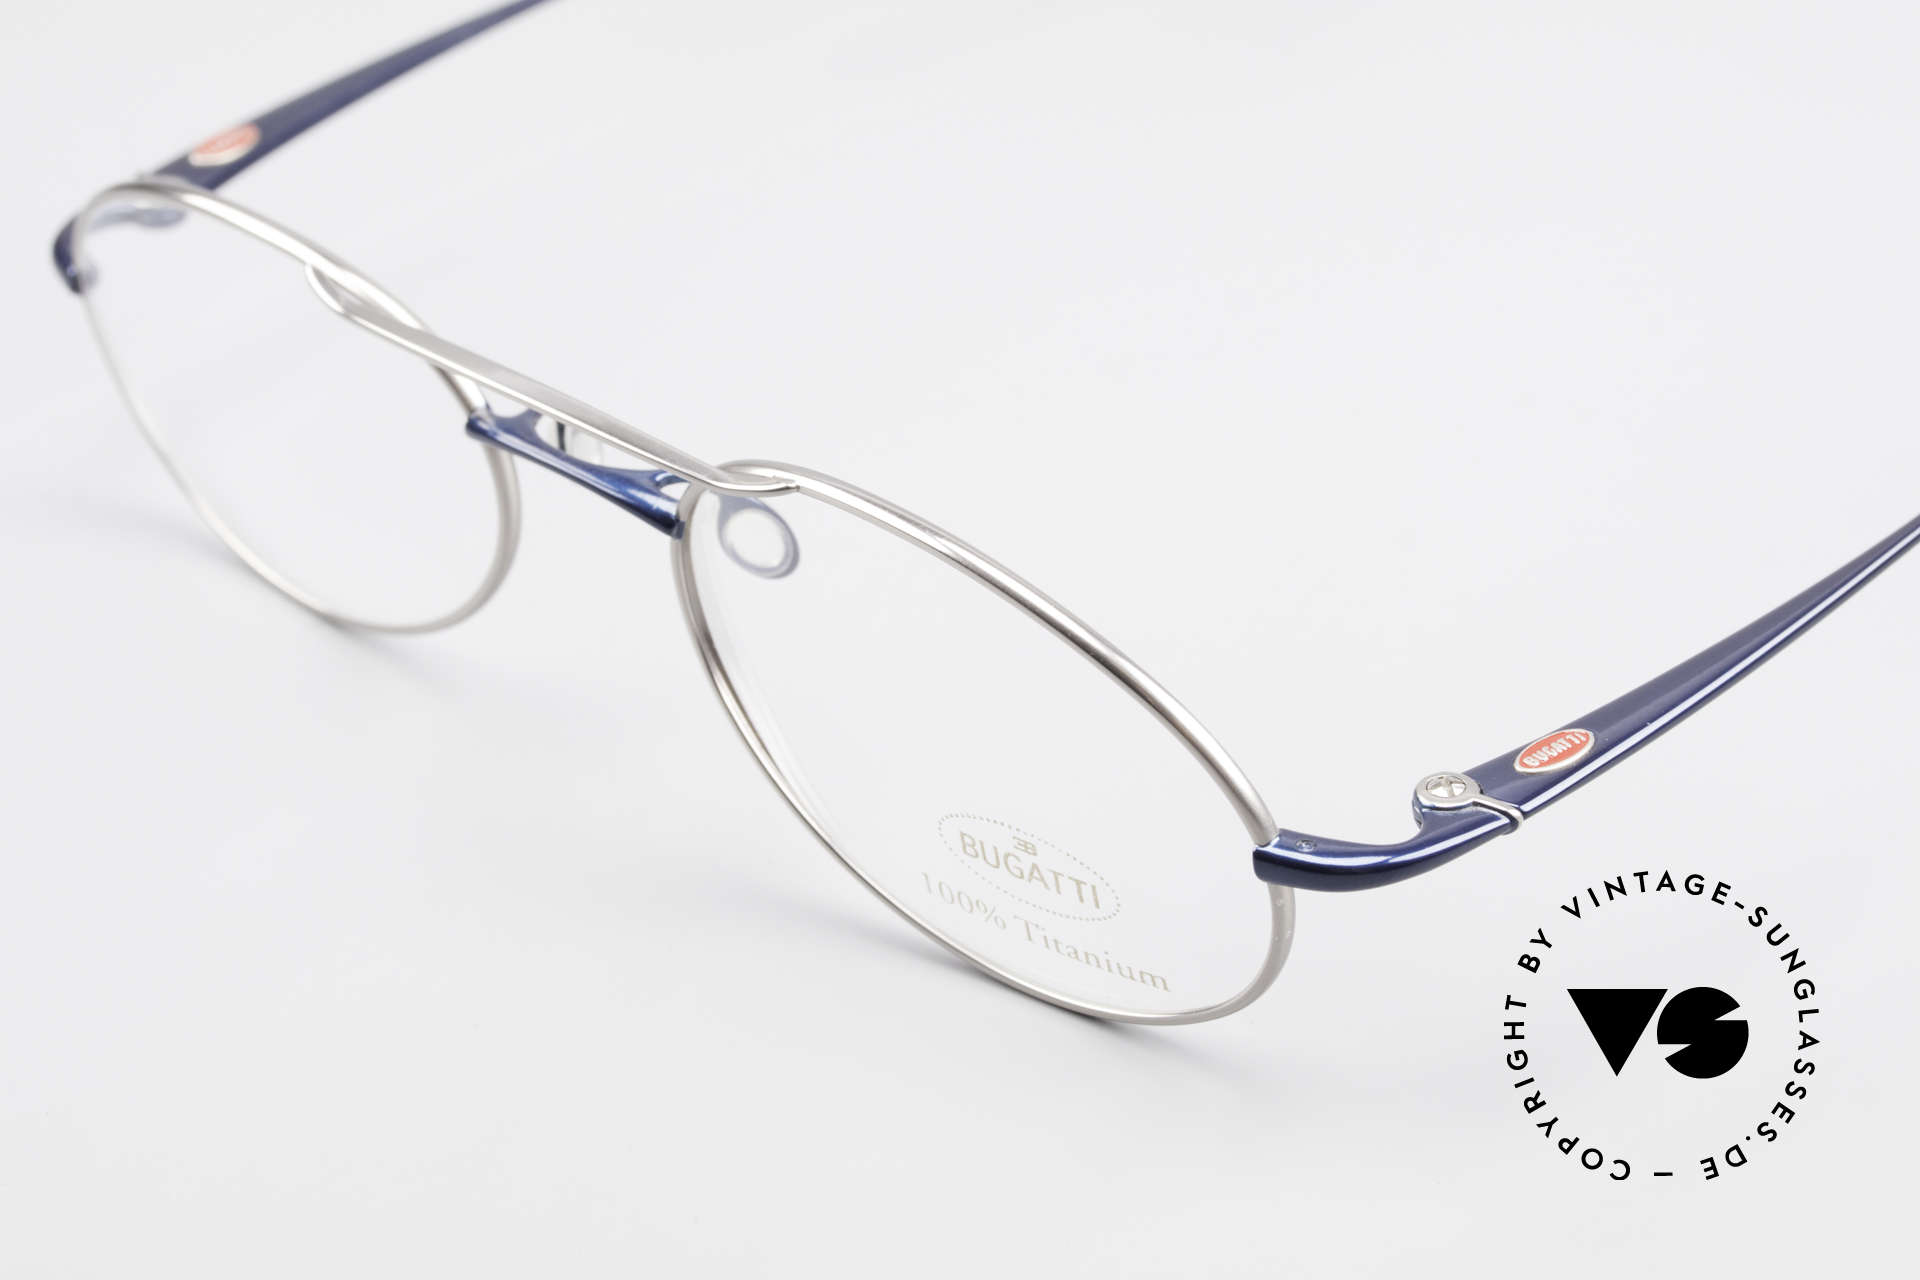 Bugatti 19239 Titanium Luxury Eyeglasses, this Bugatti frame is at the top of the eyewear sector, Made for Men